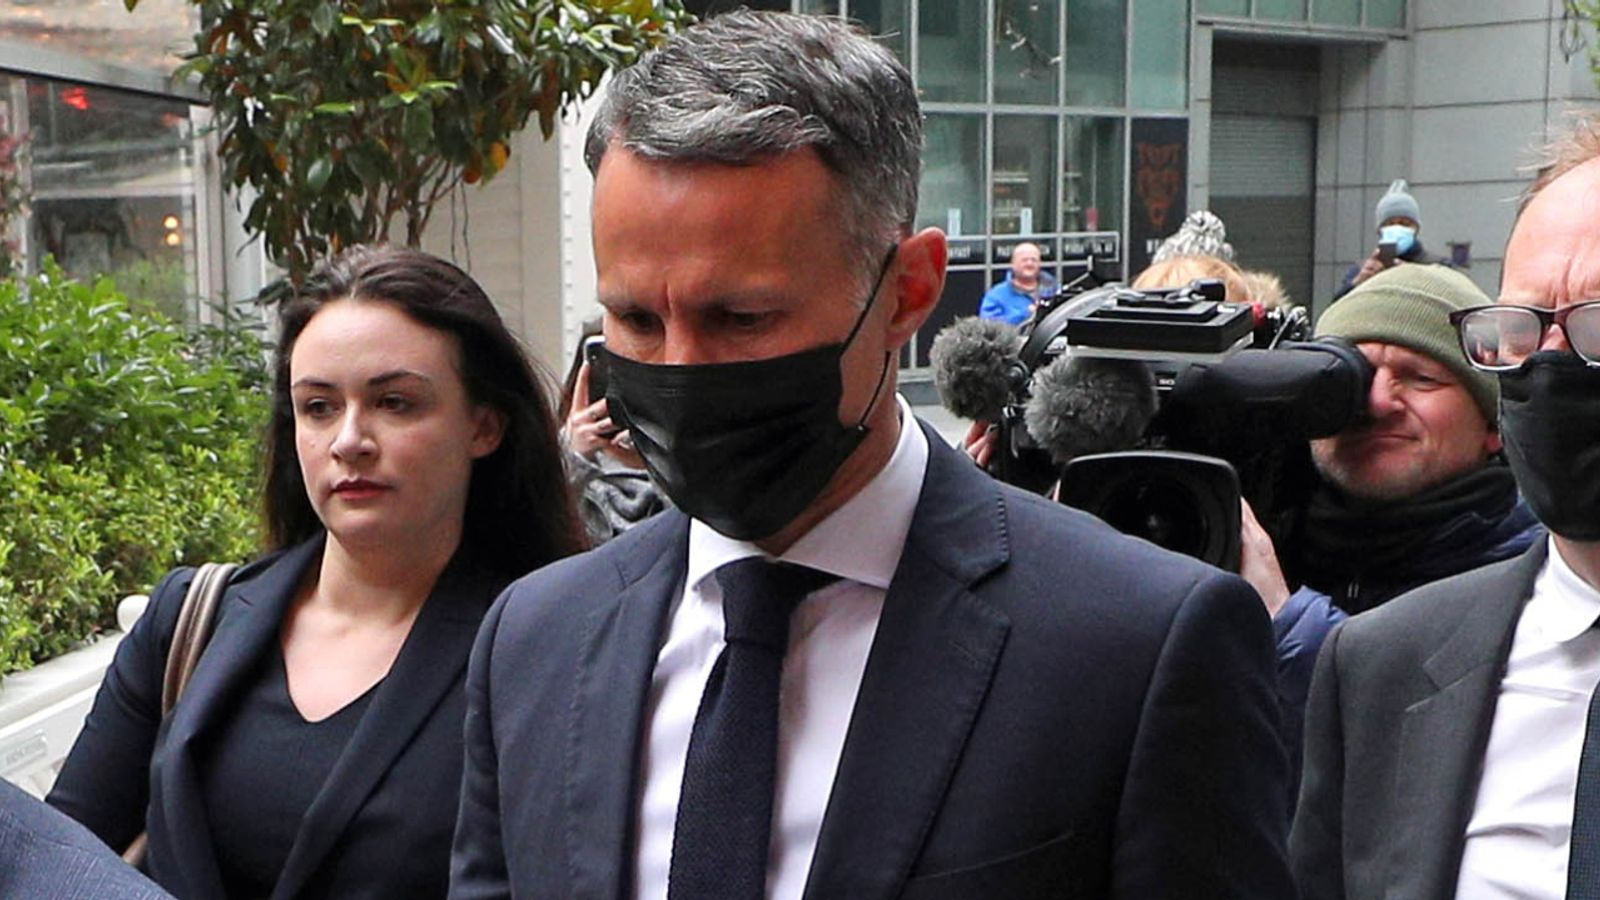 Ex-footballer and the Wales manager, Ryan Giggs is accused of assaulting two women. This image shows Giggs as he walks to court.